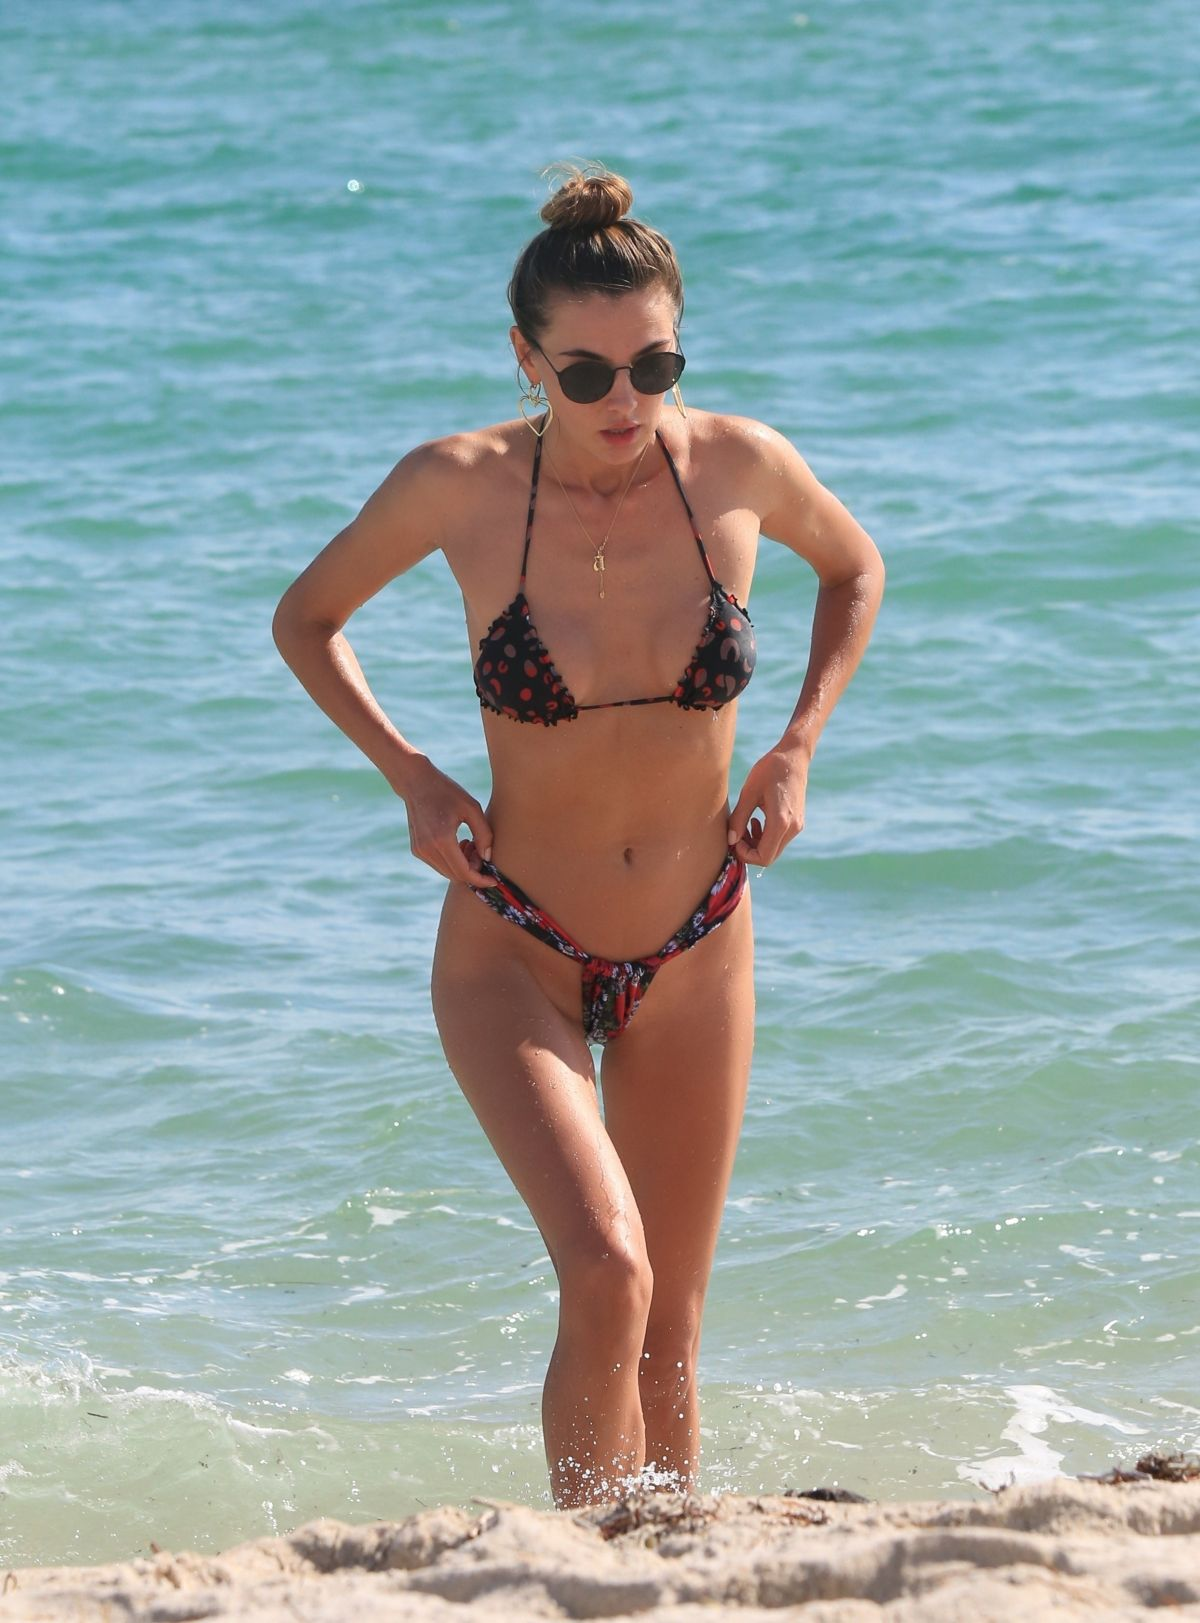 Alina Baikova in Bikini on the beach in Miami Pics 10 of 35